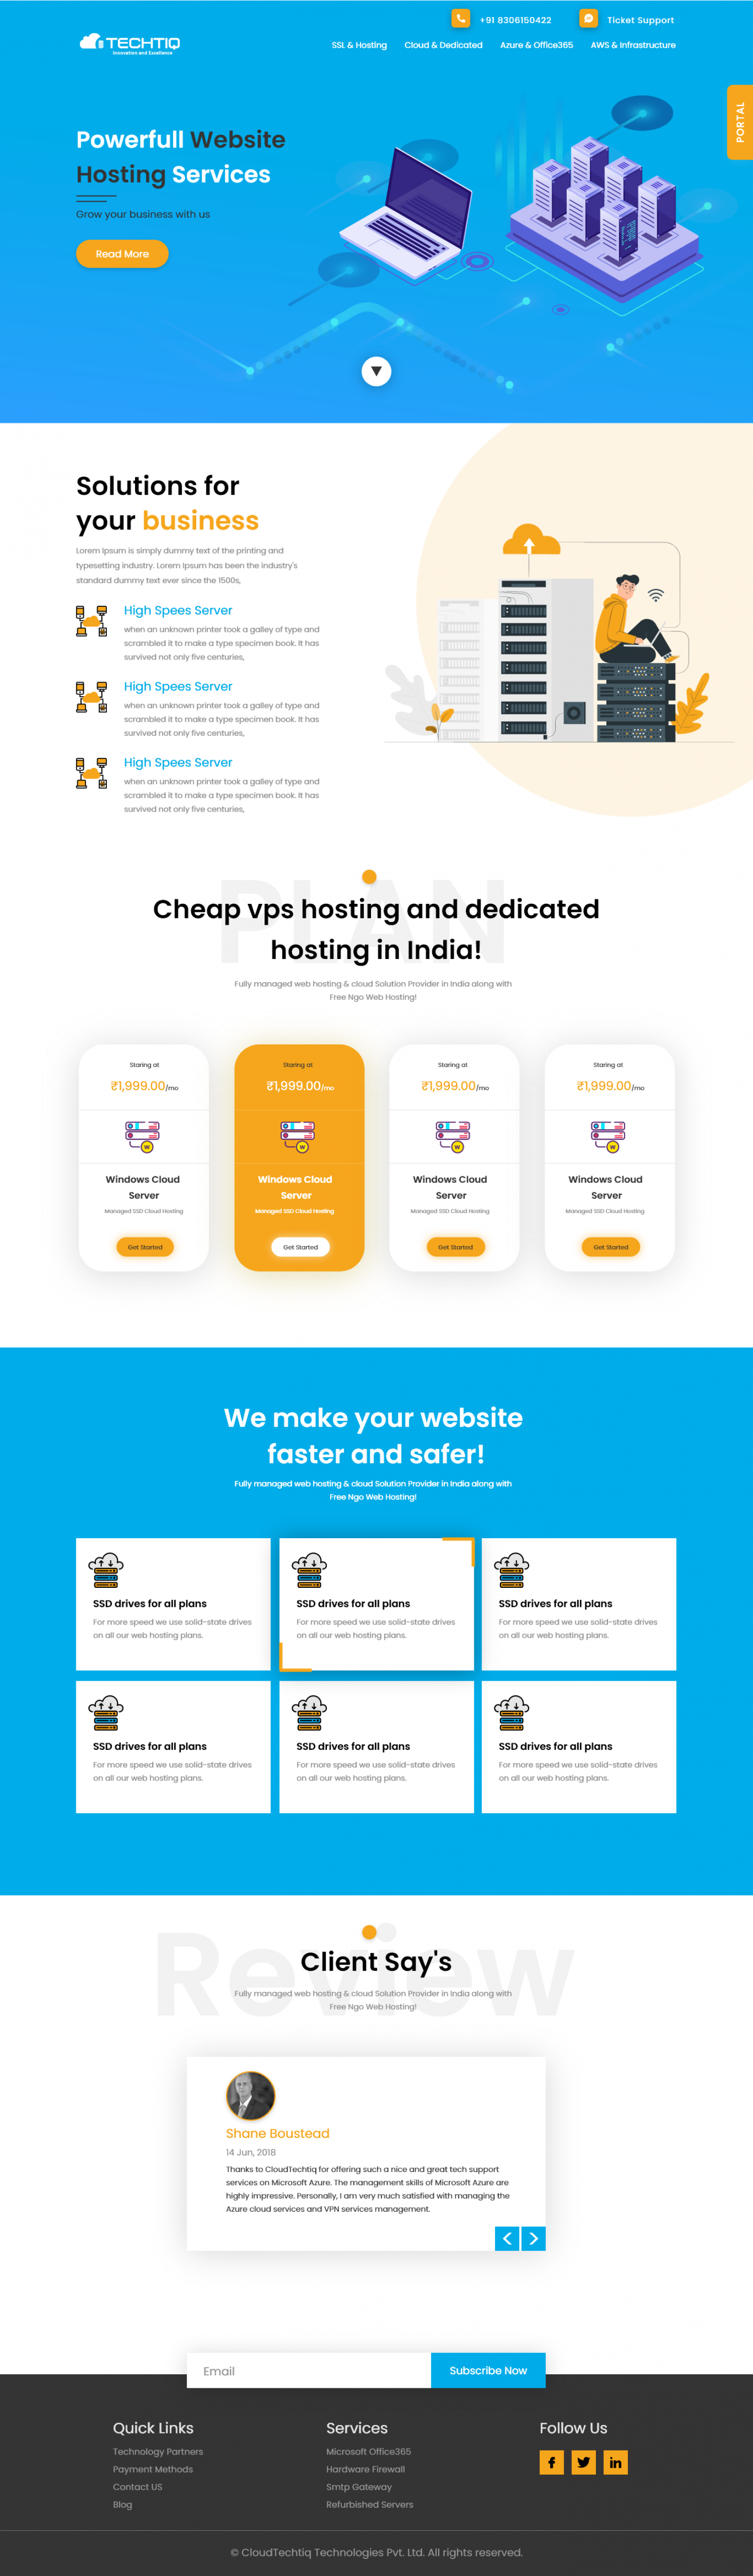 Home Page Design of Web Hosting Comapny Infographic